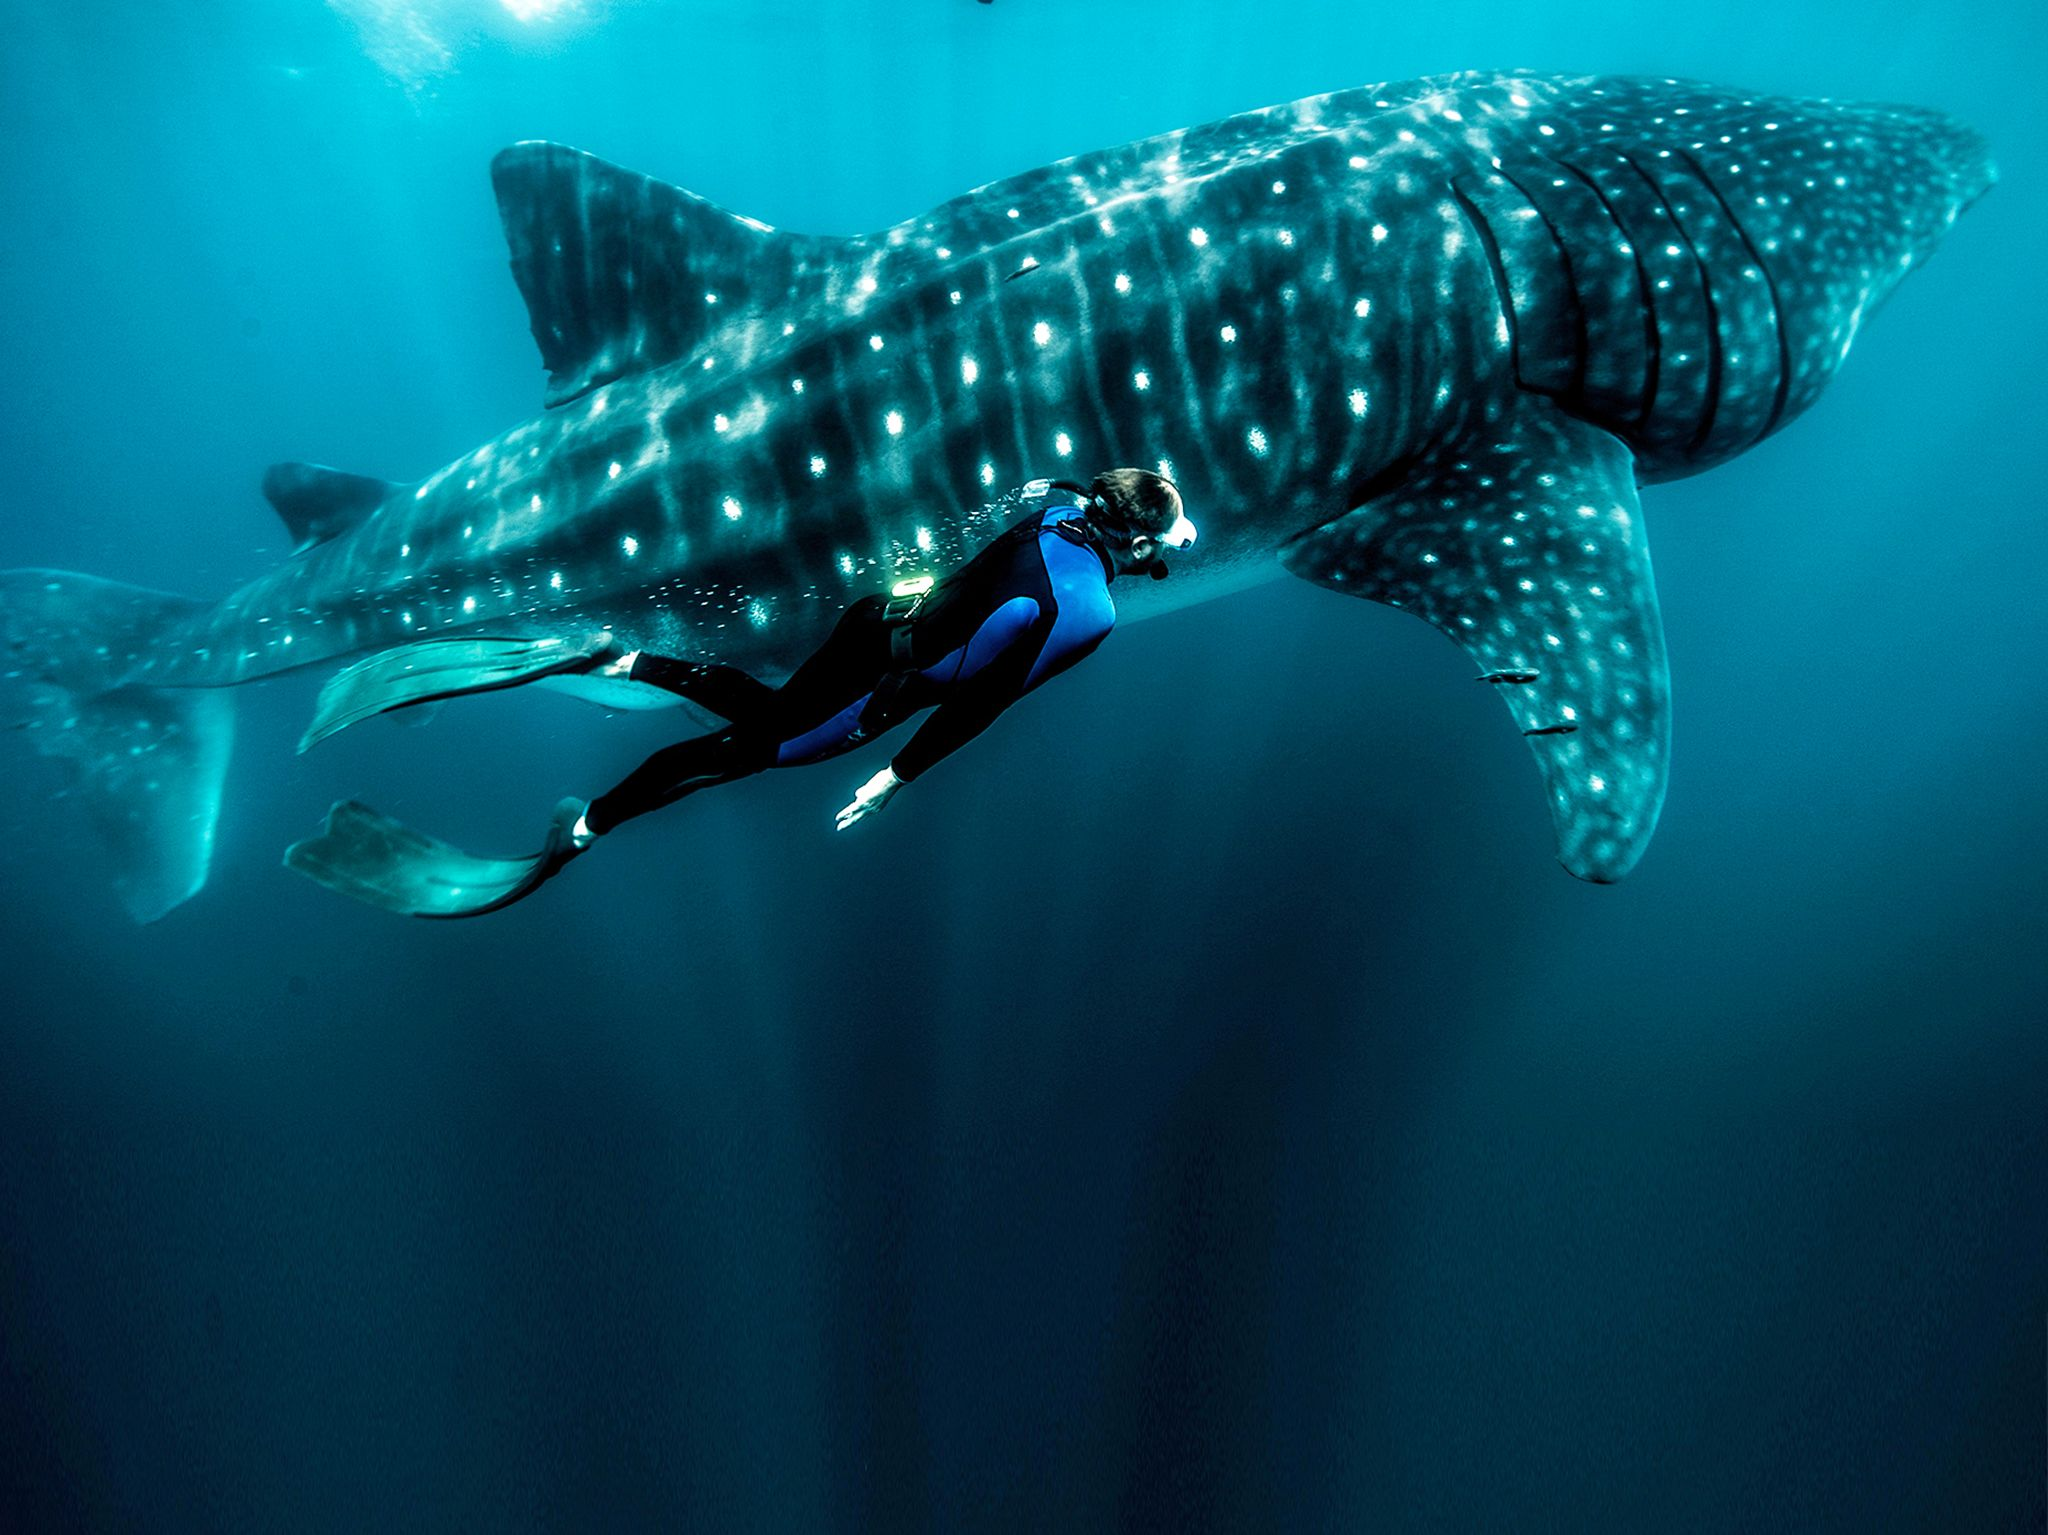 Sea Of Cortez, Mexico:  Zeb Hogan free dives alongside an enormous 30ft Whale shark. This image... [Foto del giorno - November 2018]